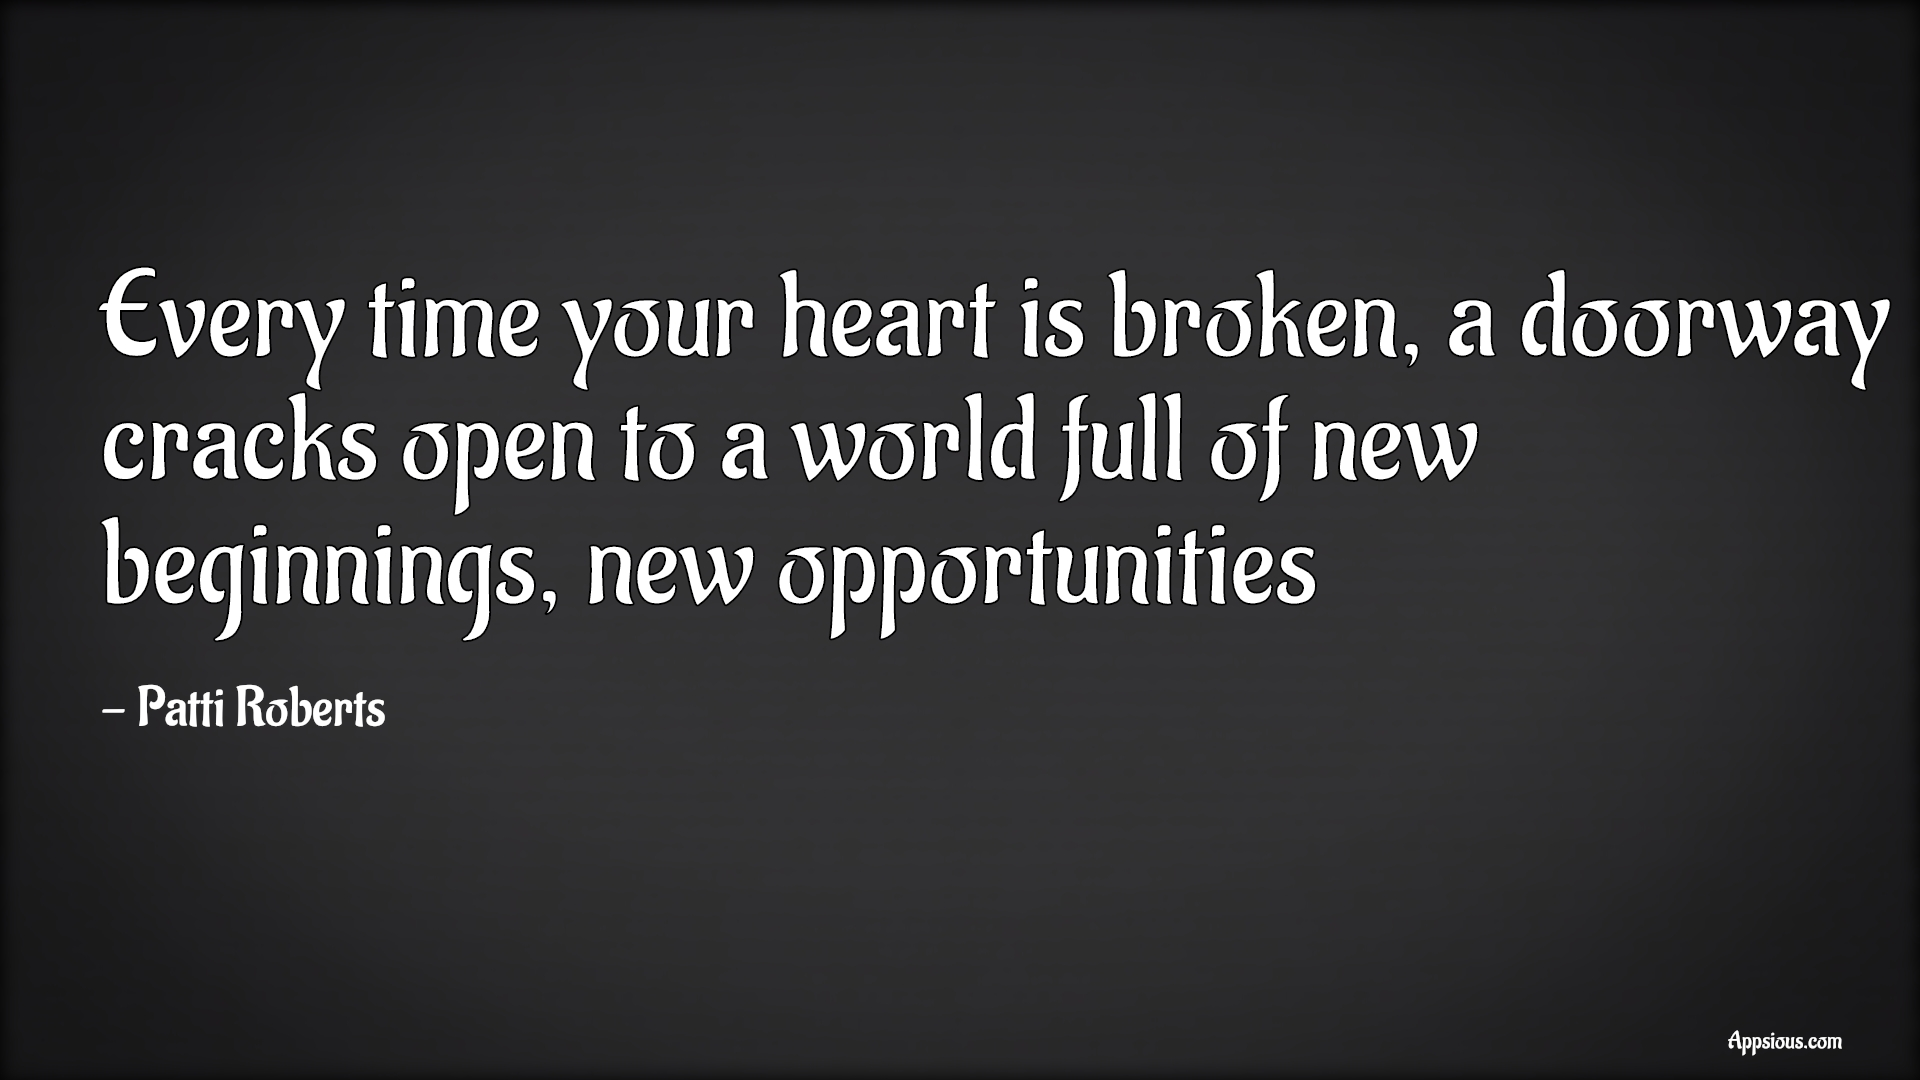 Every time your heart is broken, a doorway cracks open to a world full of new beginnings, new opportunities